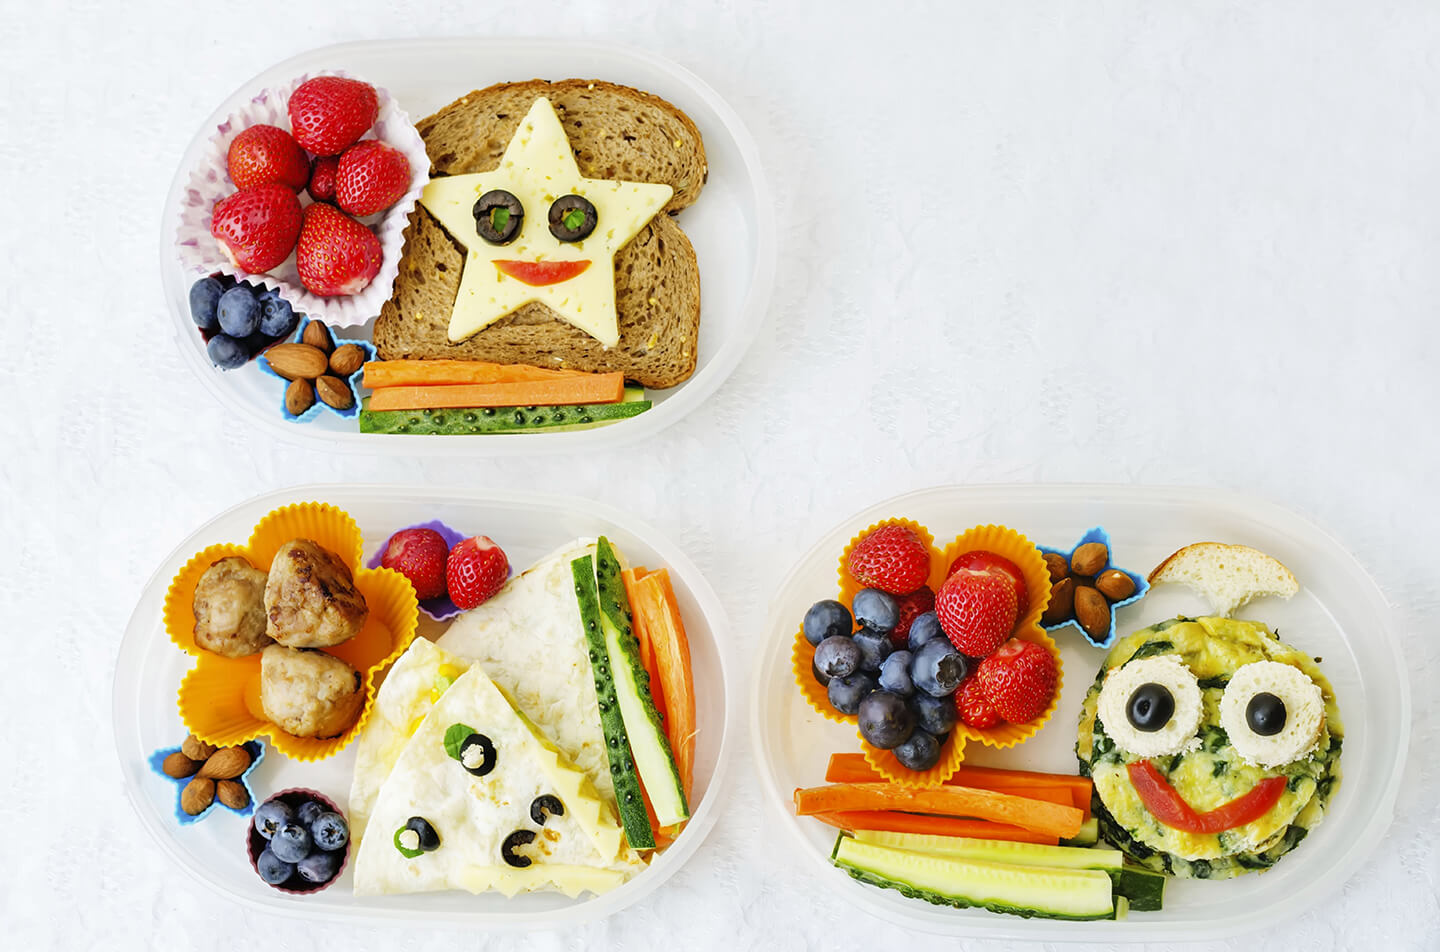 Pack a smarter lunch box for your children with these simple tips